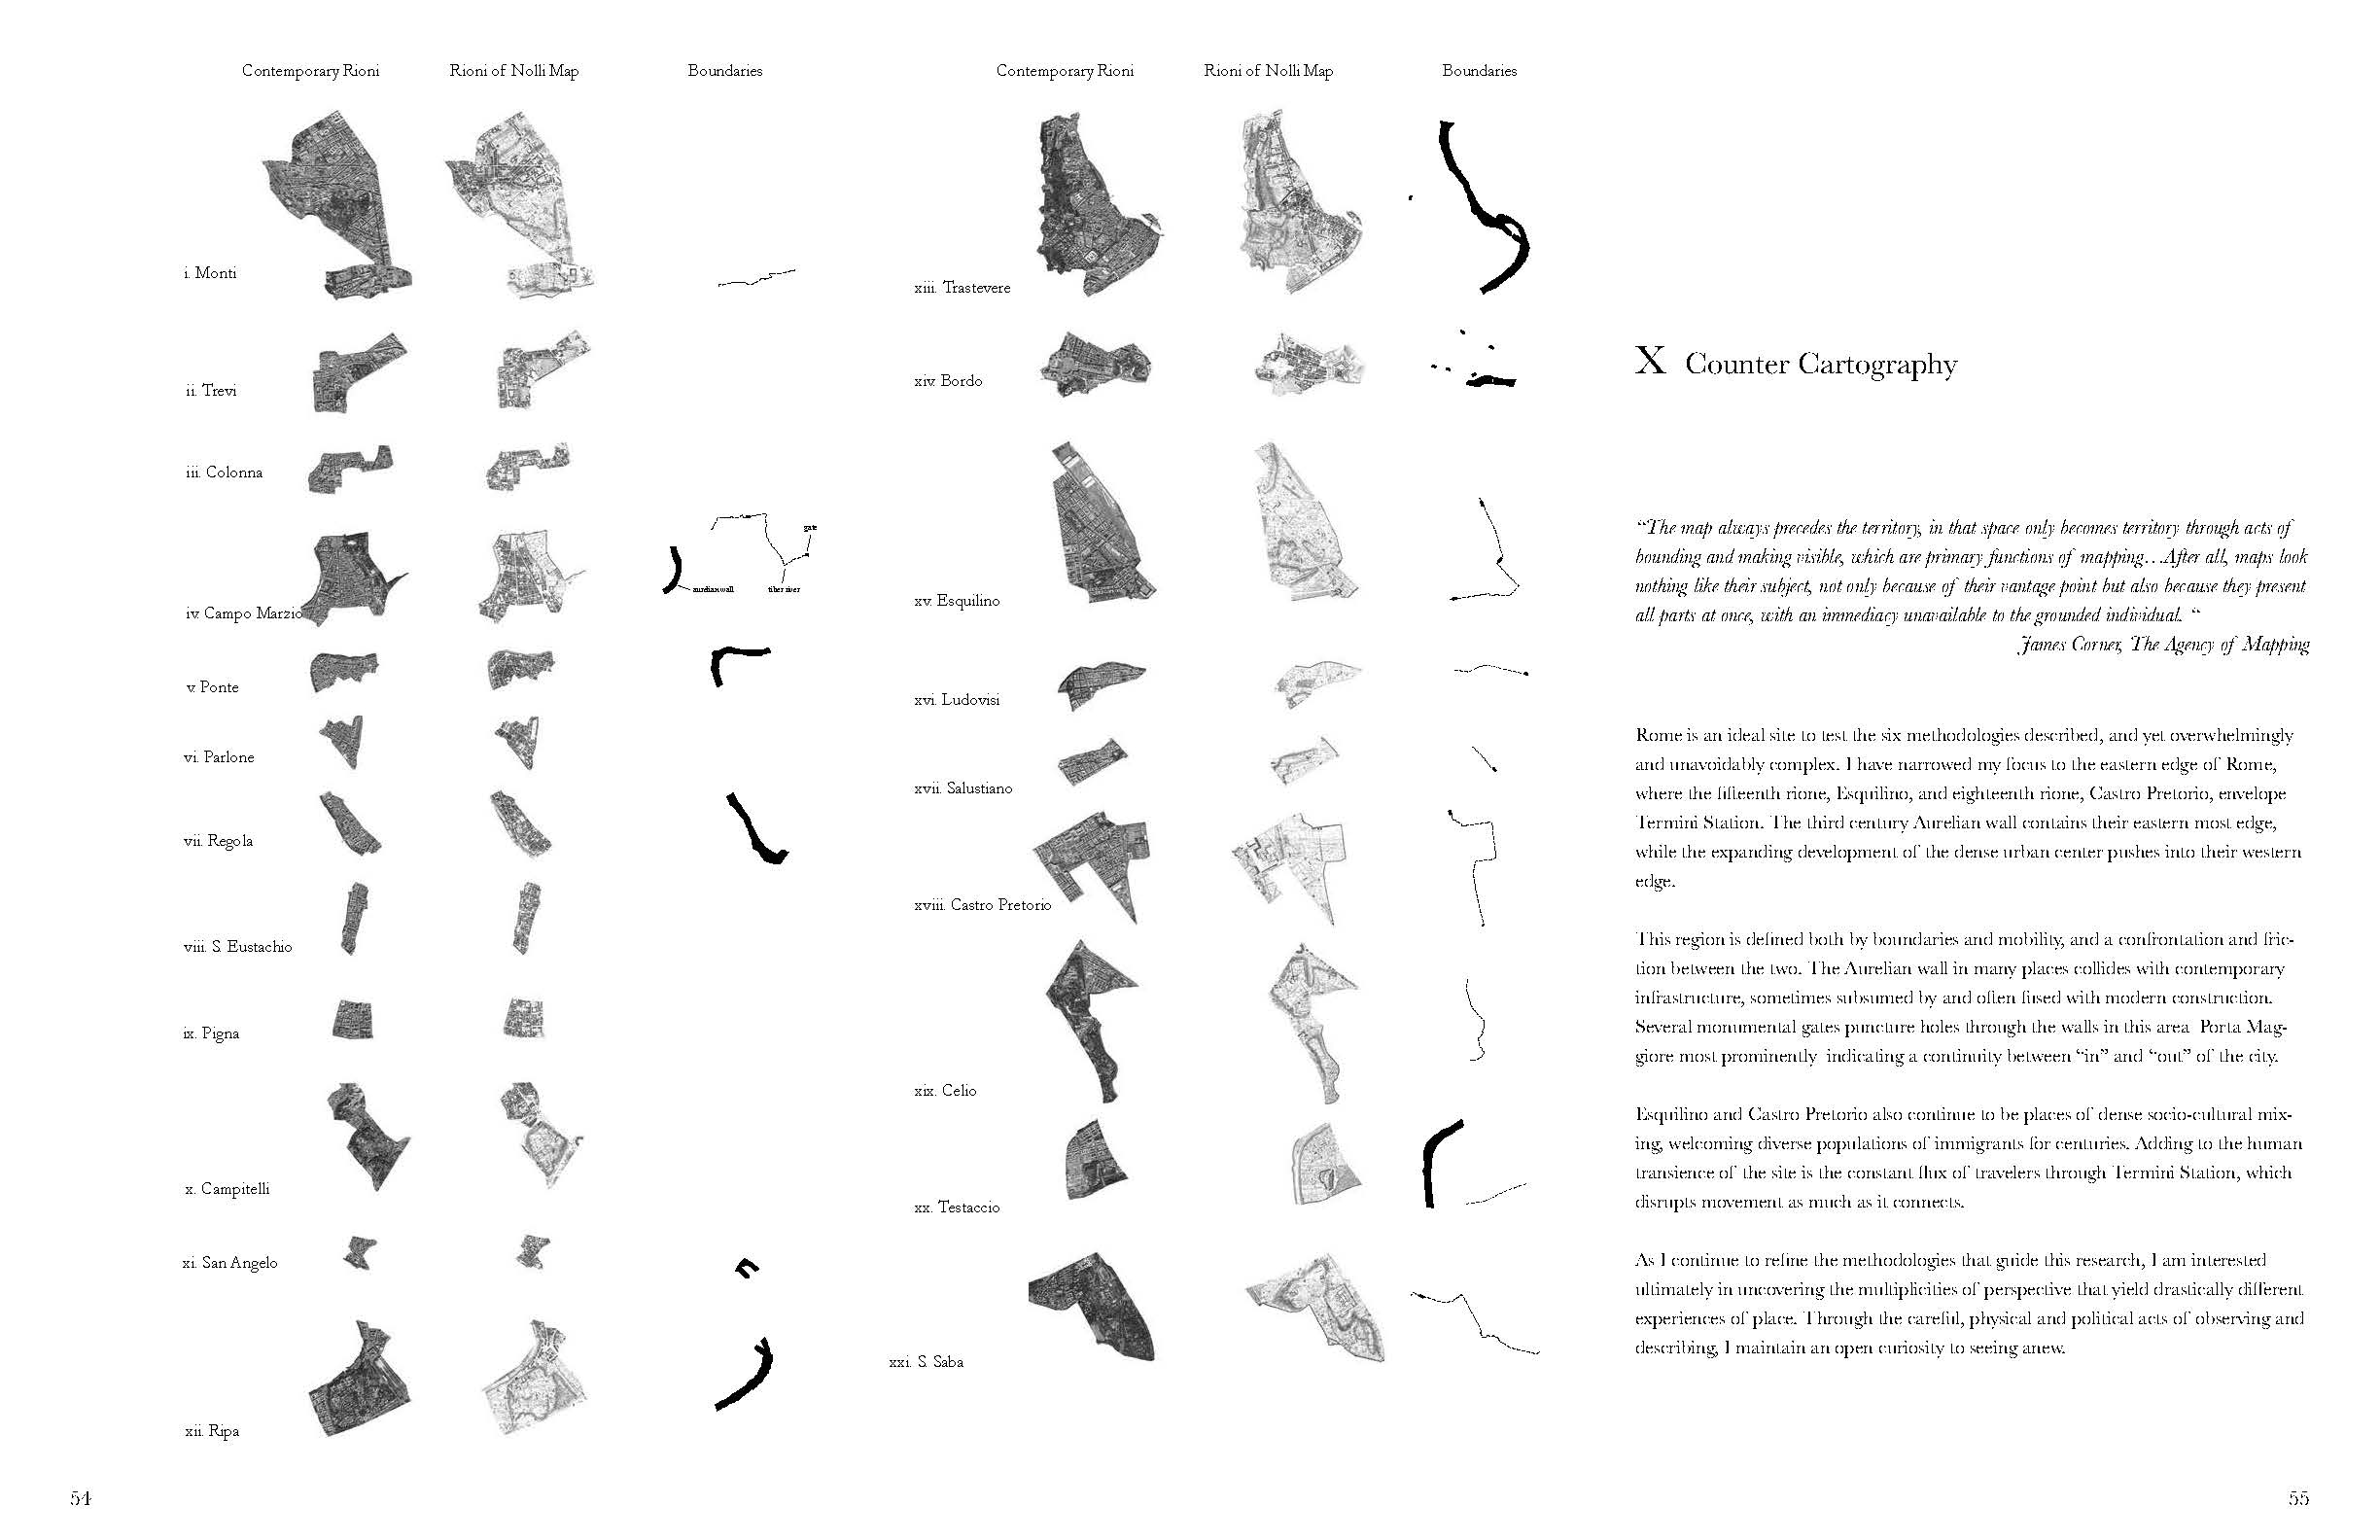 book layout_Page_28.jpg